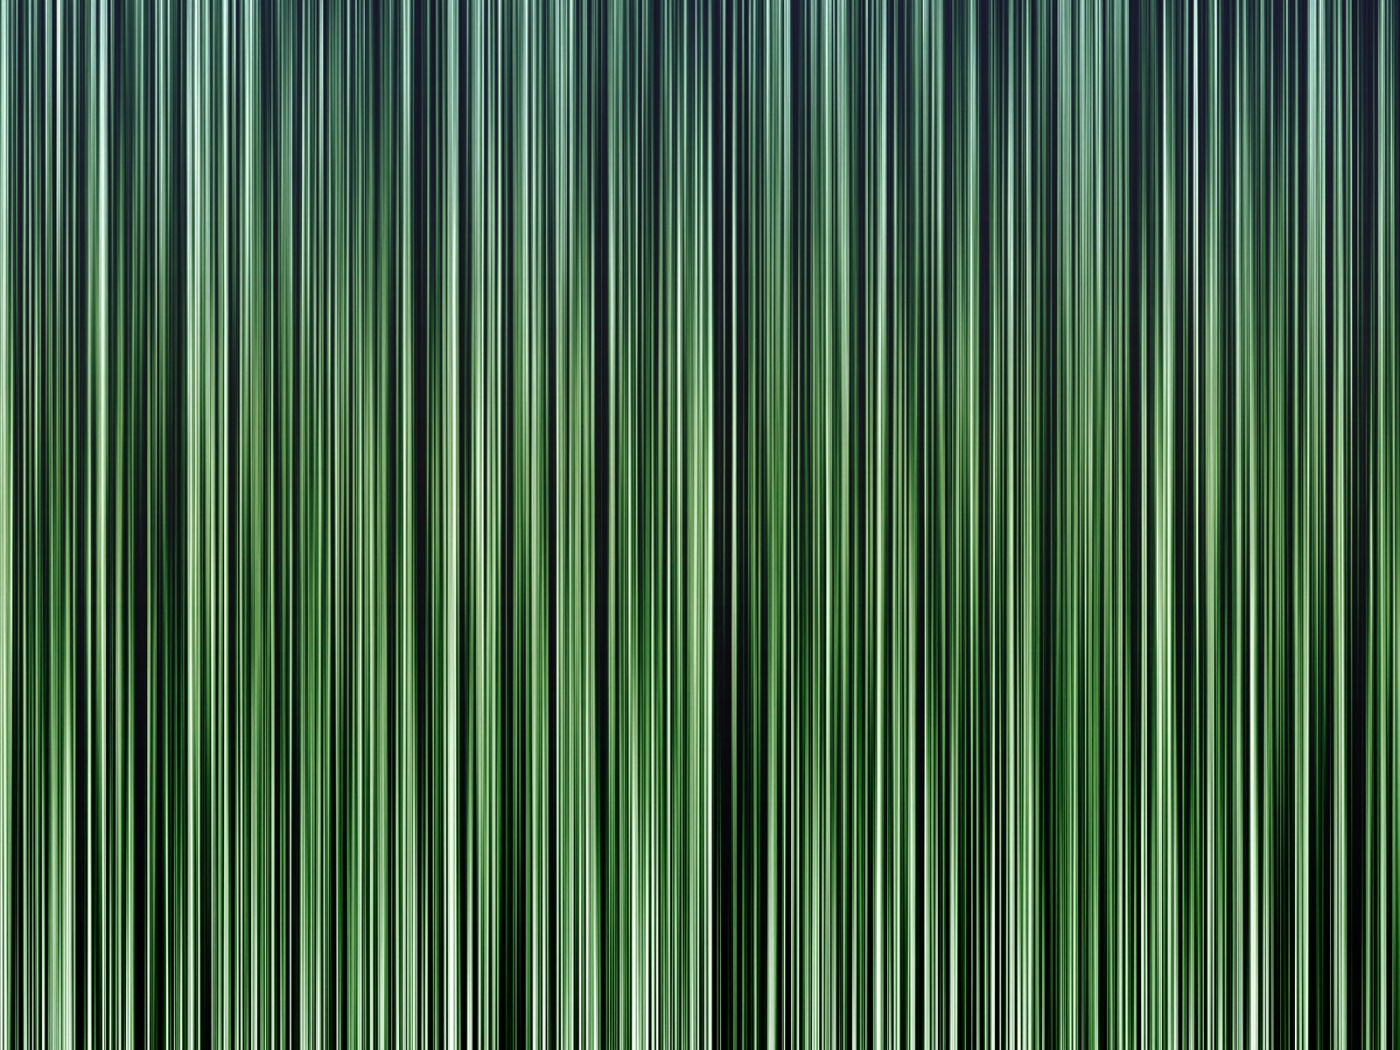 Stripes Lines Green